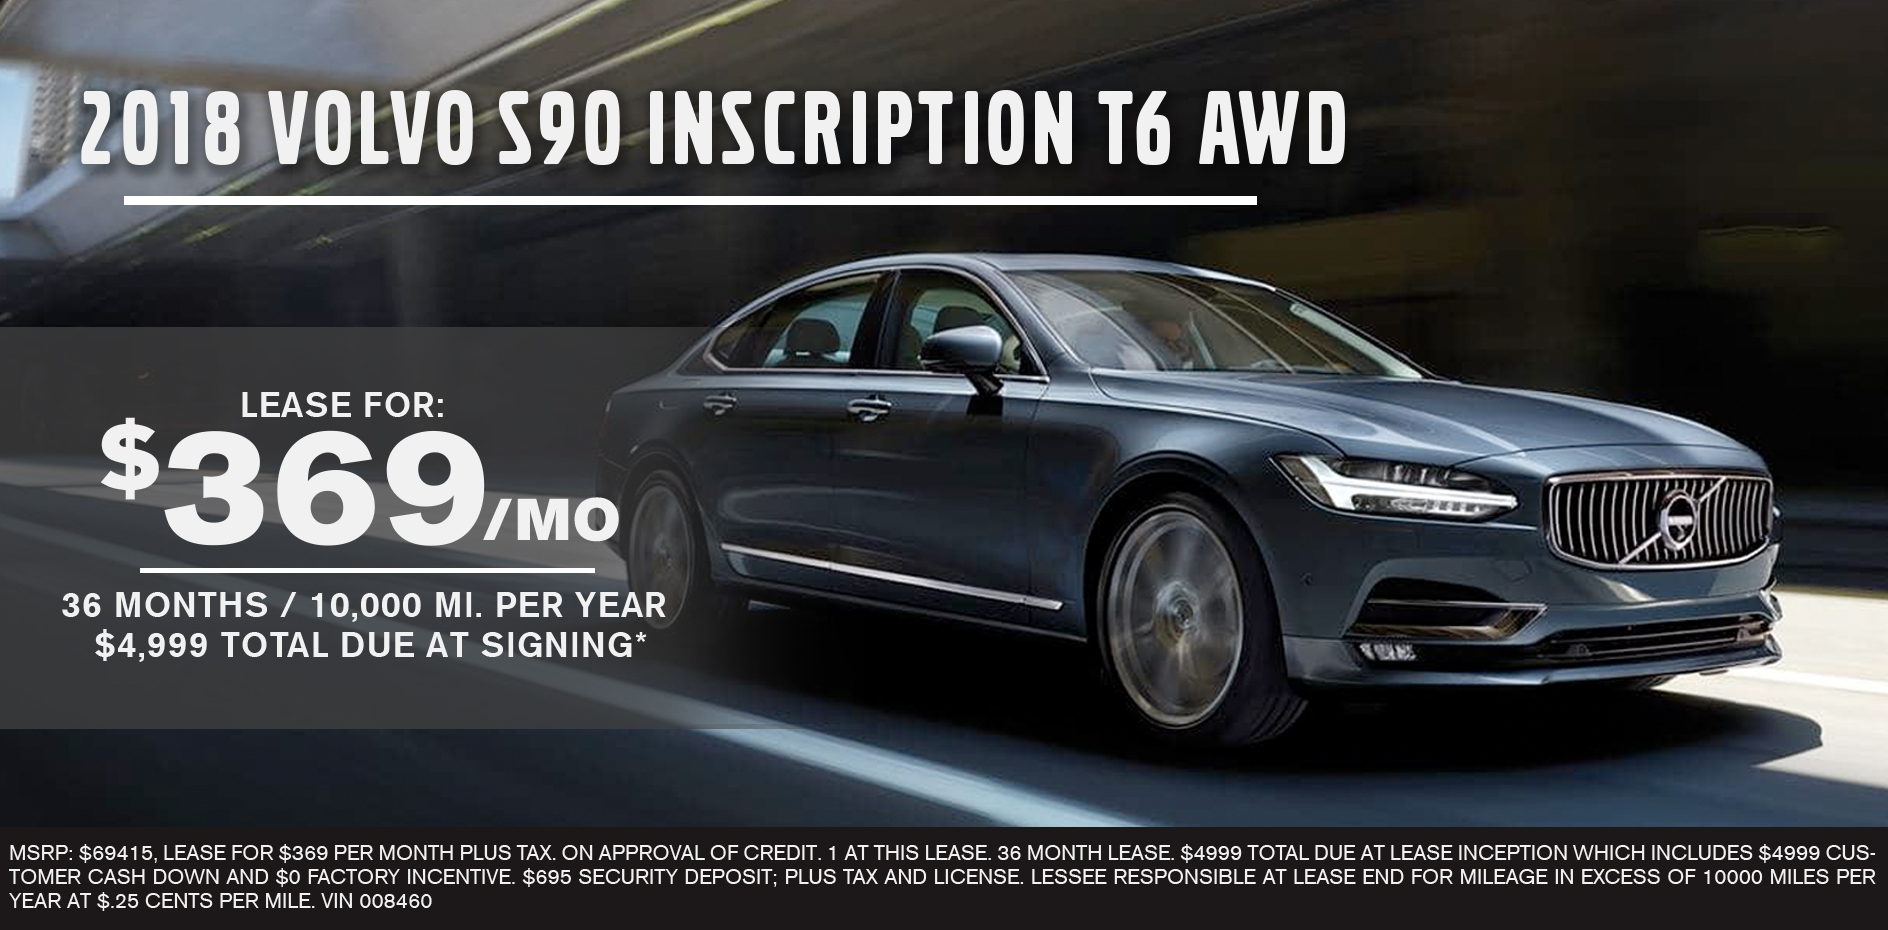 2018 Volvo S90 Inscription T6 AWD